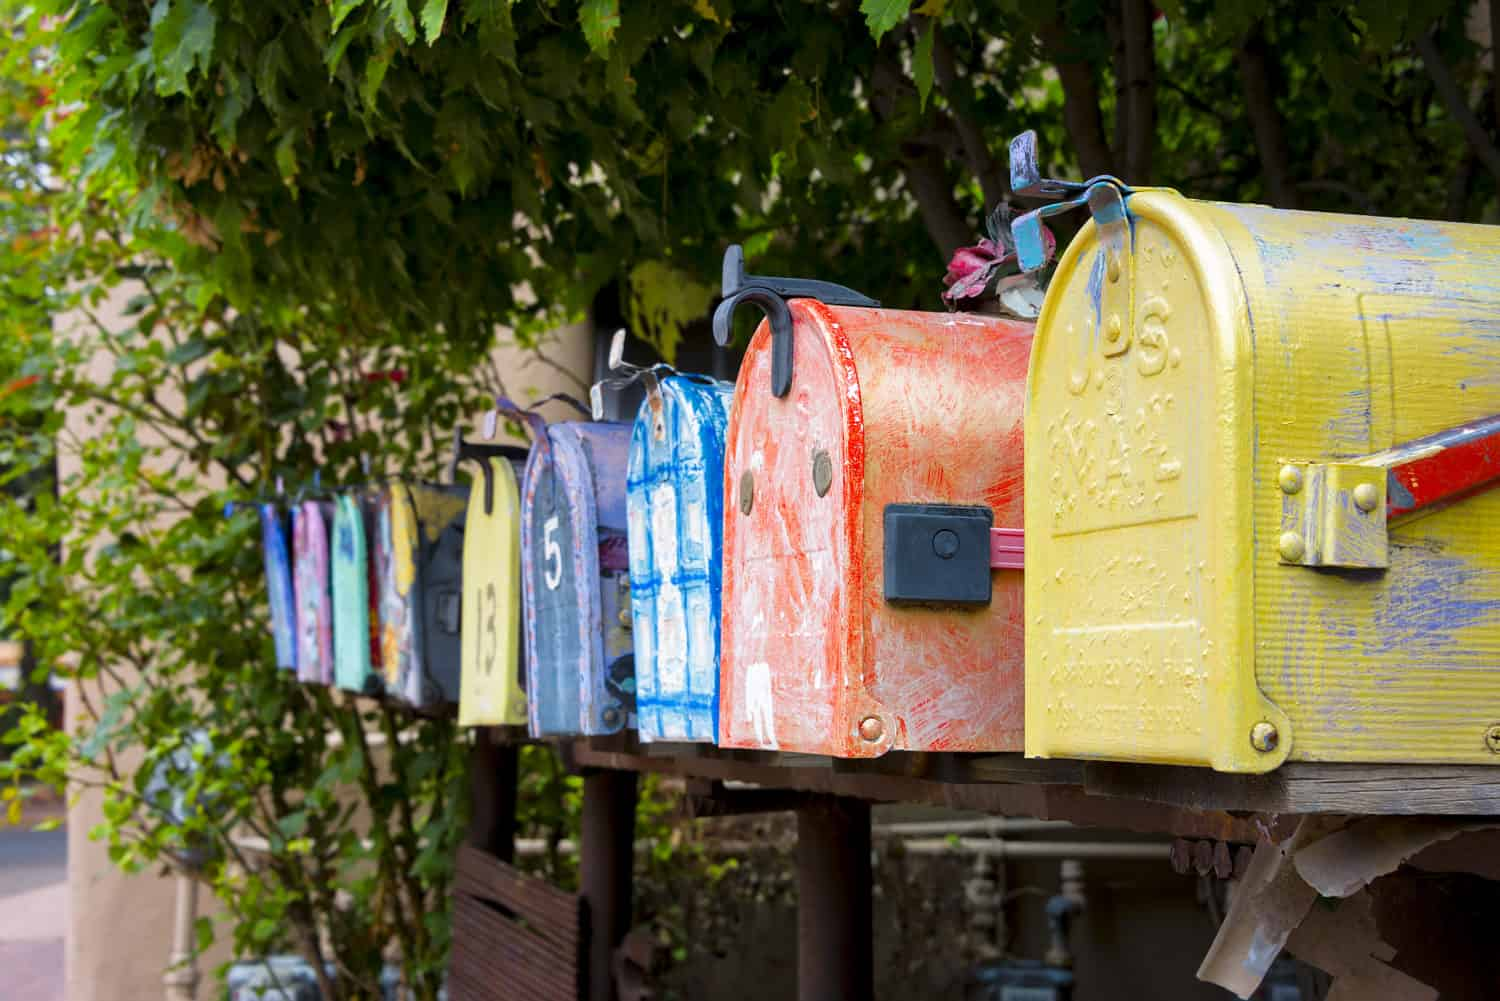 A row of colorful, decorated mailboxes